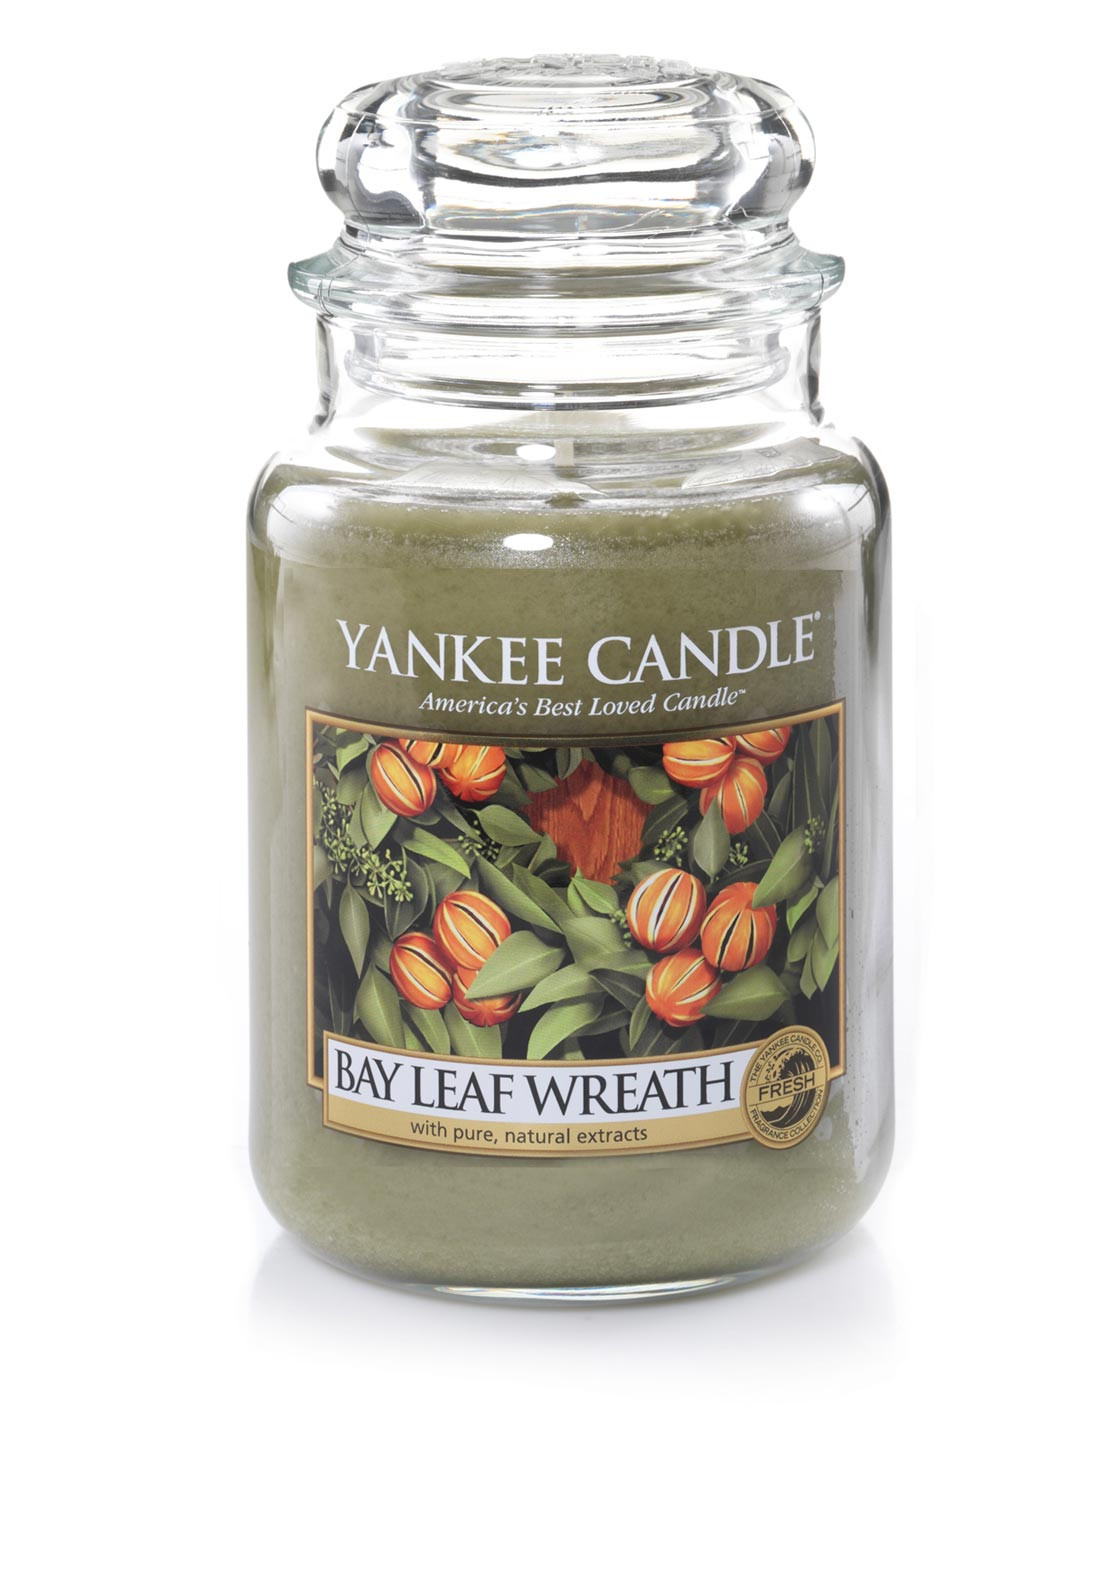 Yankee Candle Large Classic Jar, Bay Leaf Wreath